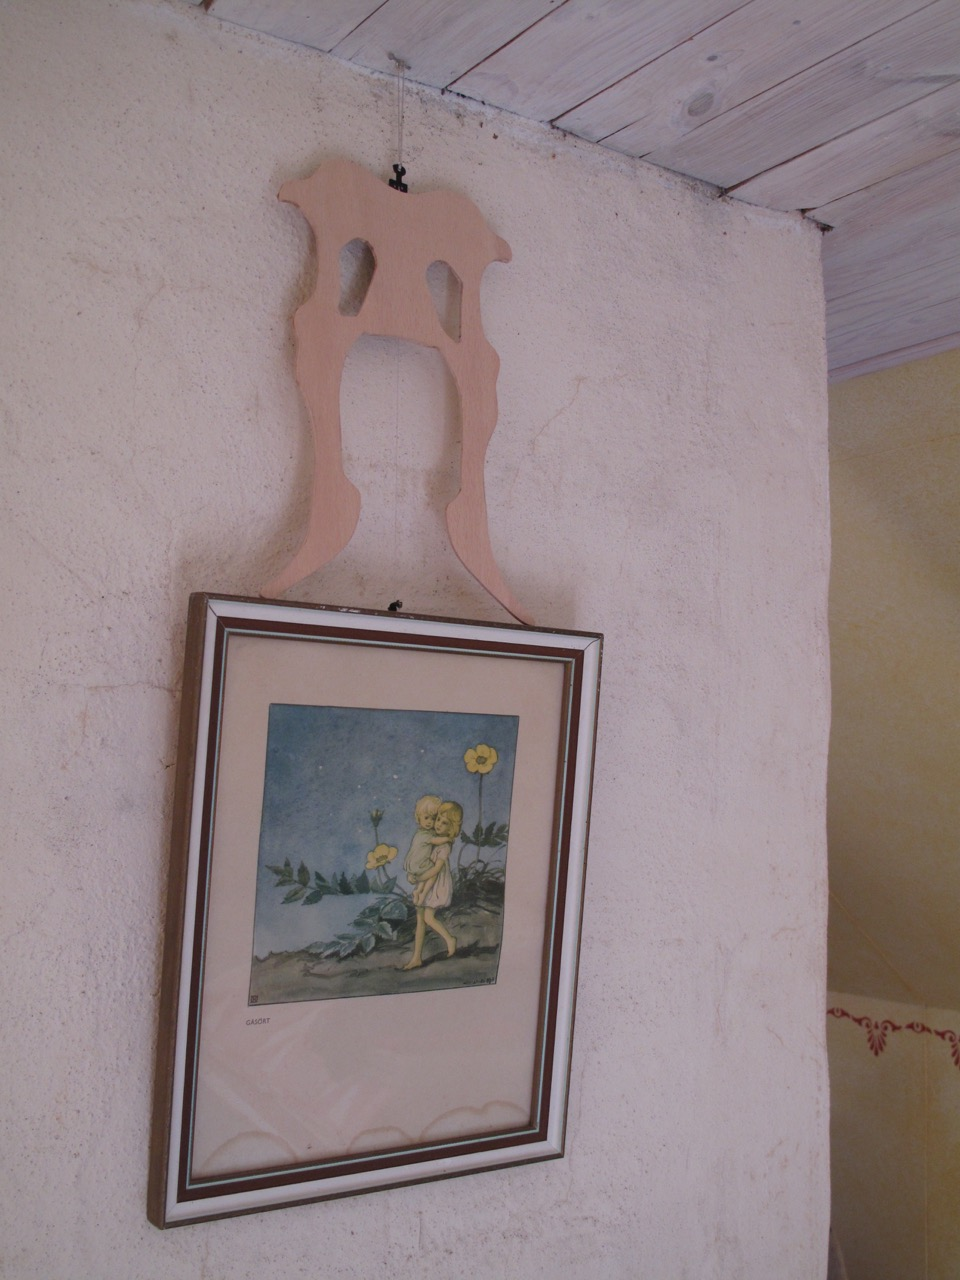 The place in the cottage house where the wellinger rested nearly one month before being placed.